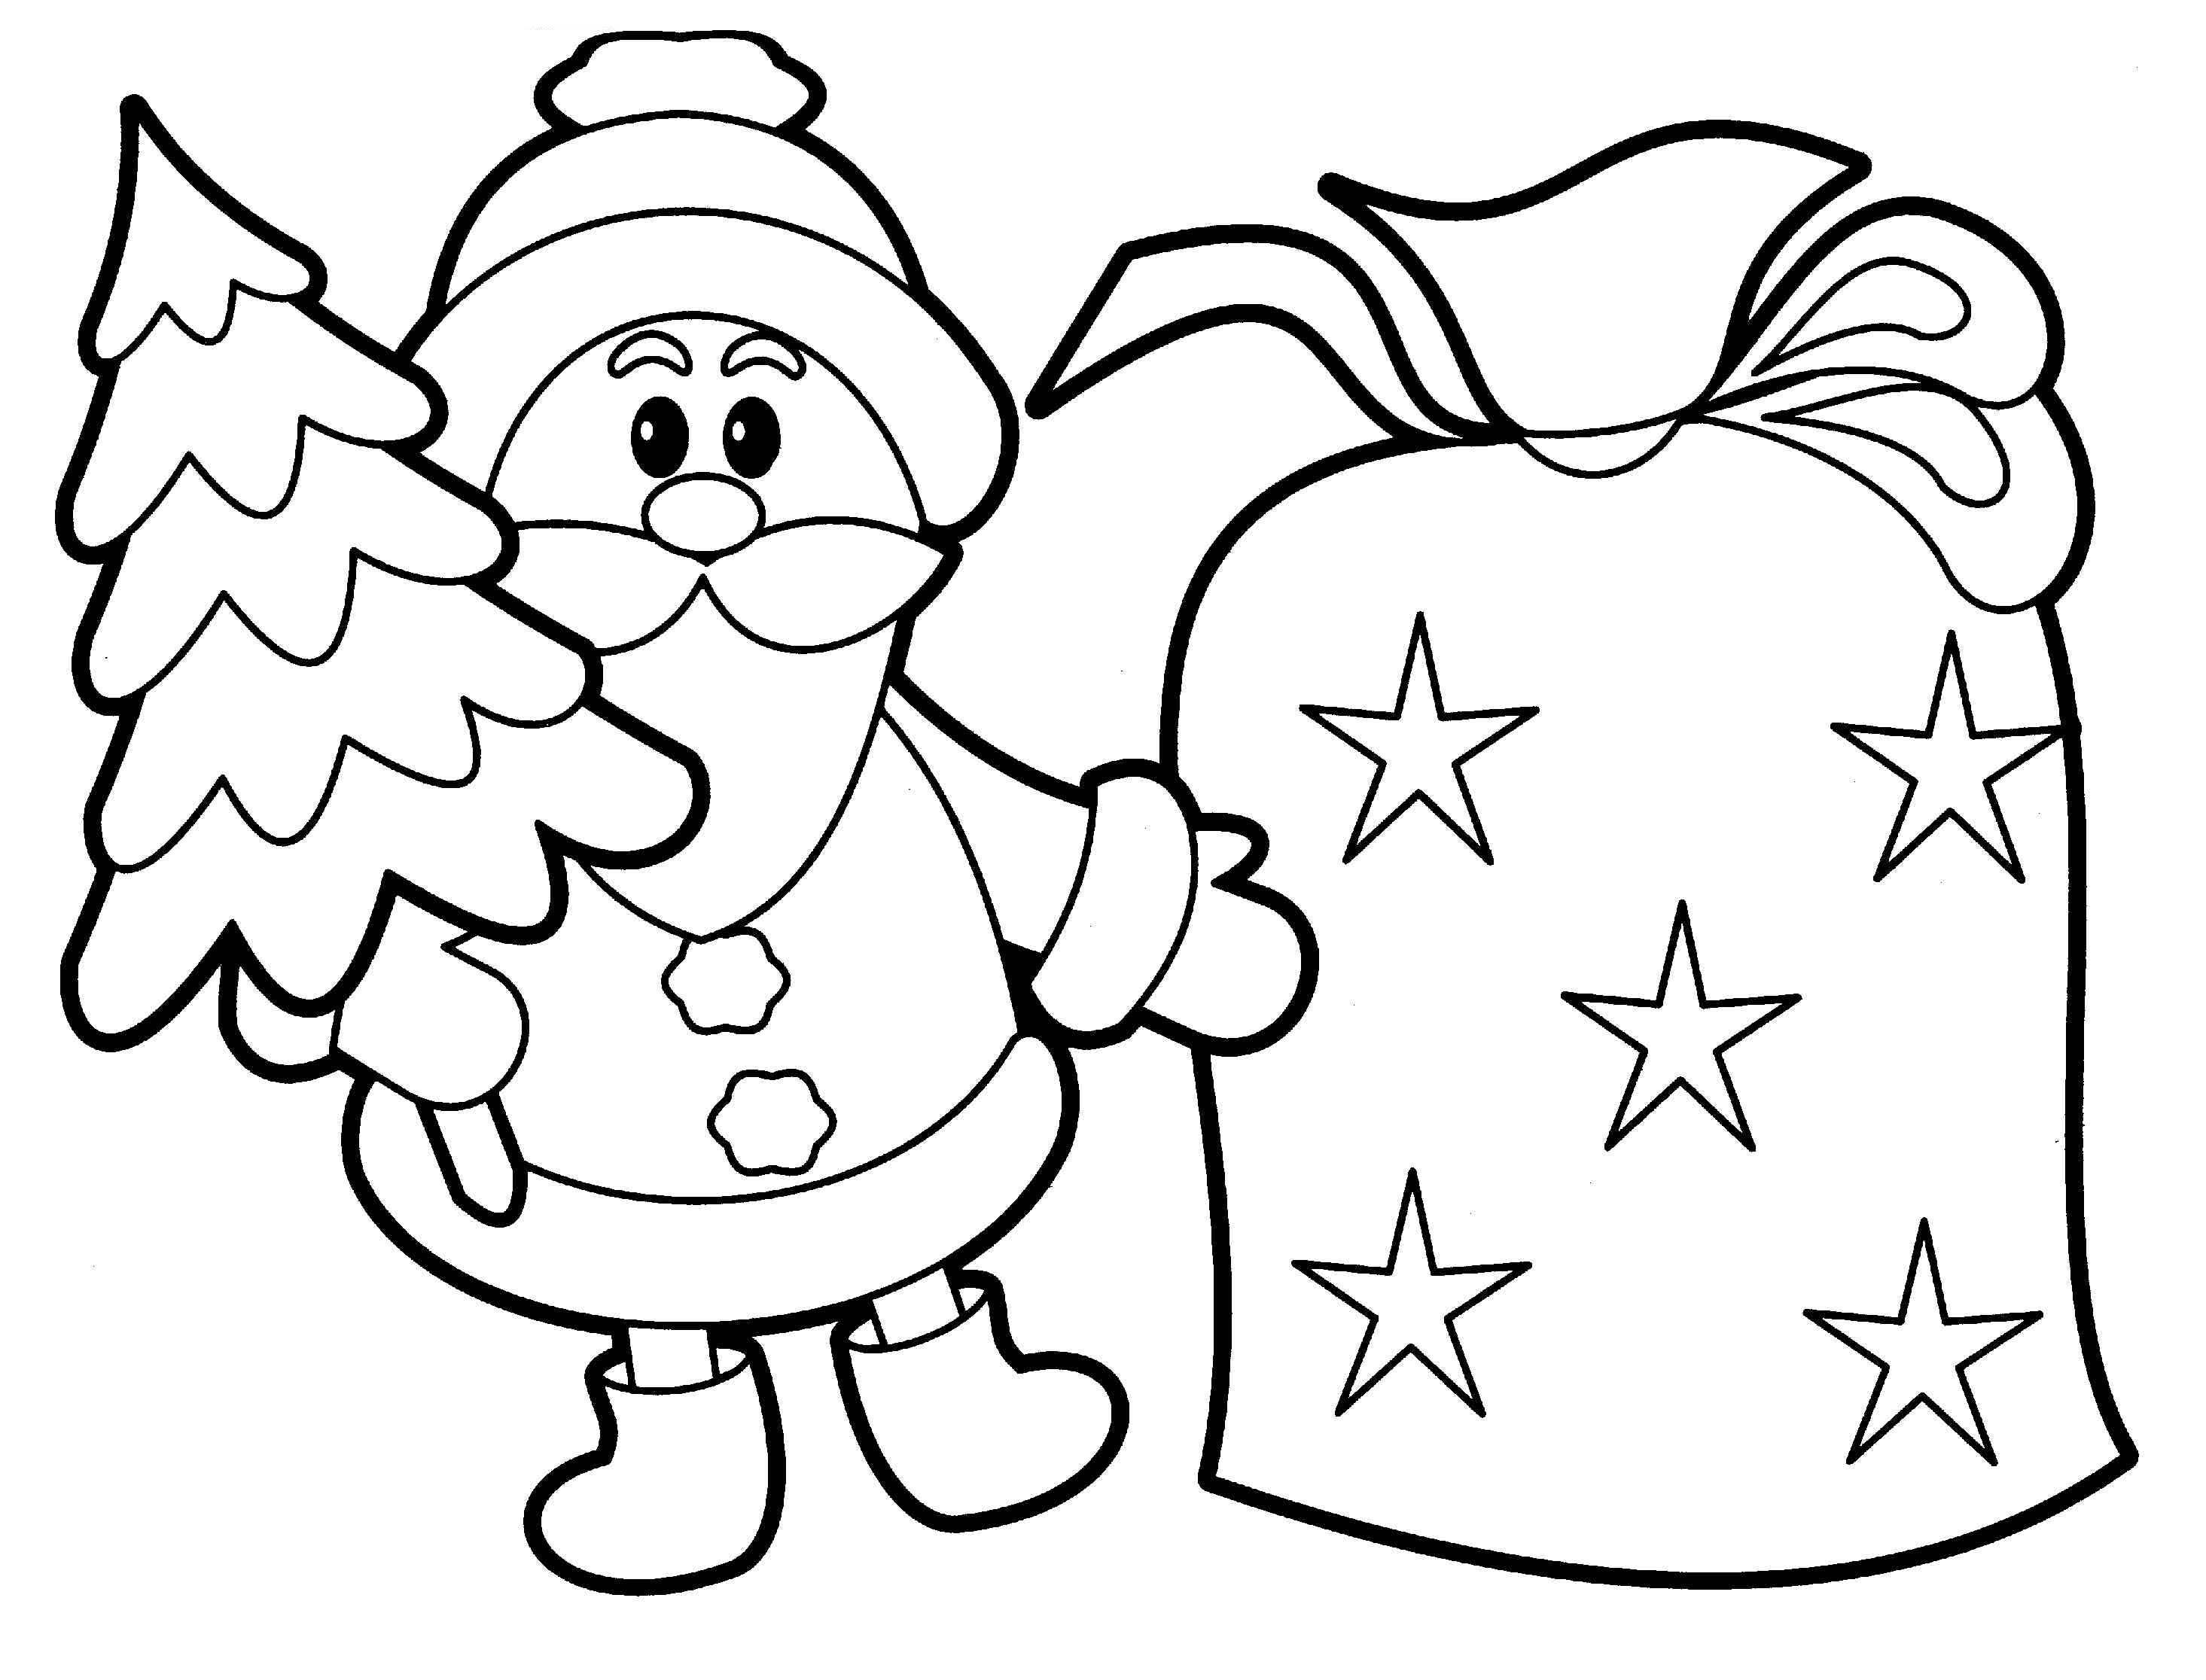 holiday coloring pages free frozen christmas coloring page kristen hewitt free coloring pages holiday